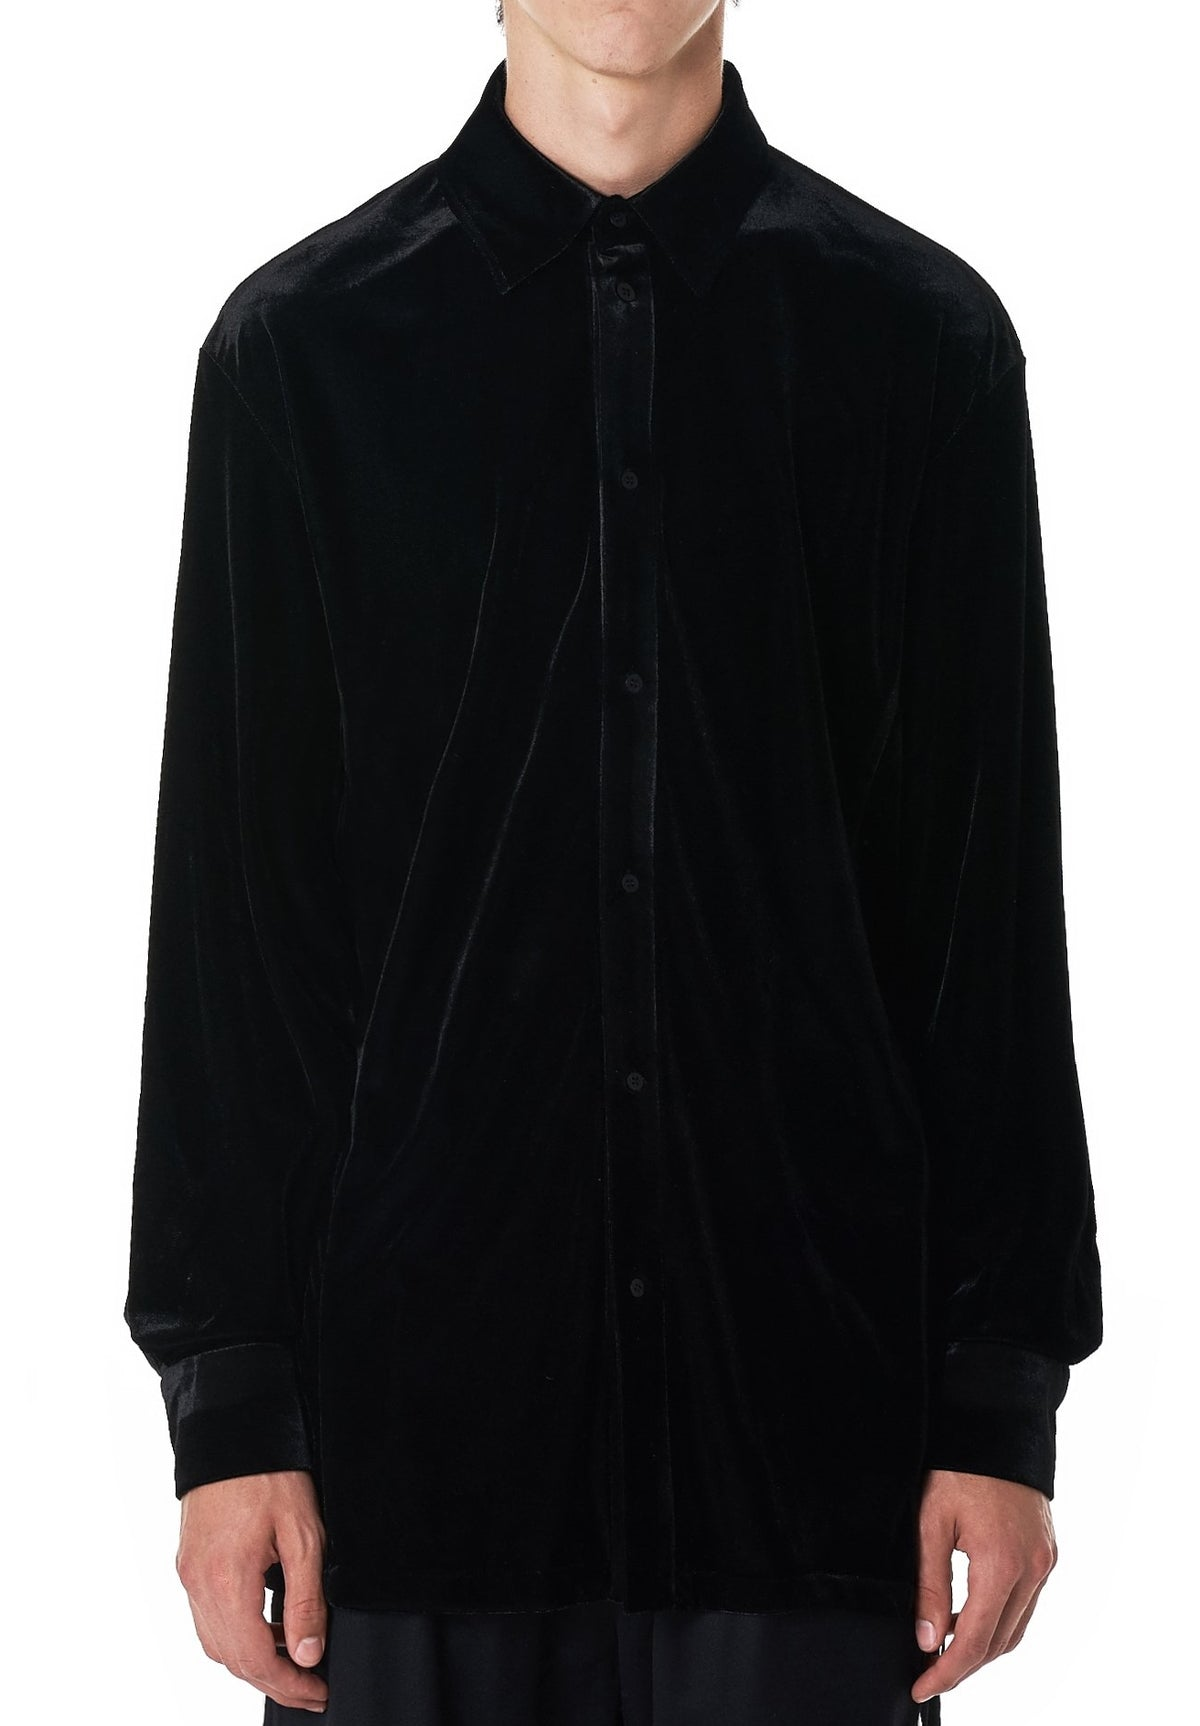 Regular-fit Crushed Velvet Shirt in Black Asymmetric Collar Dropped Shoulder